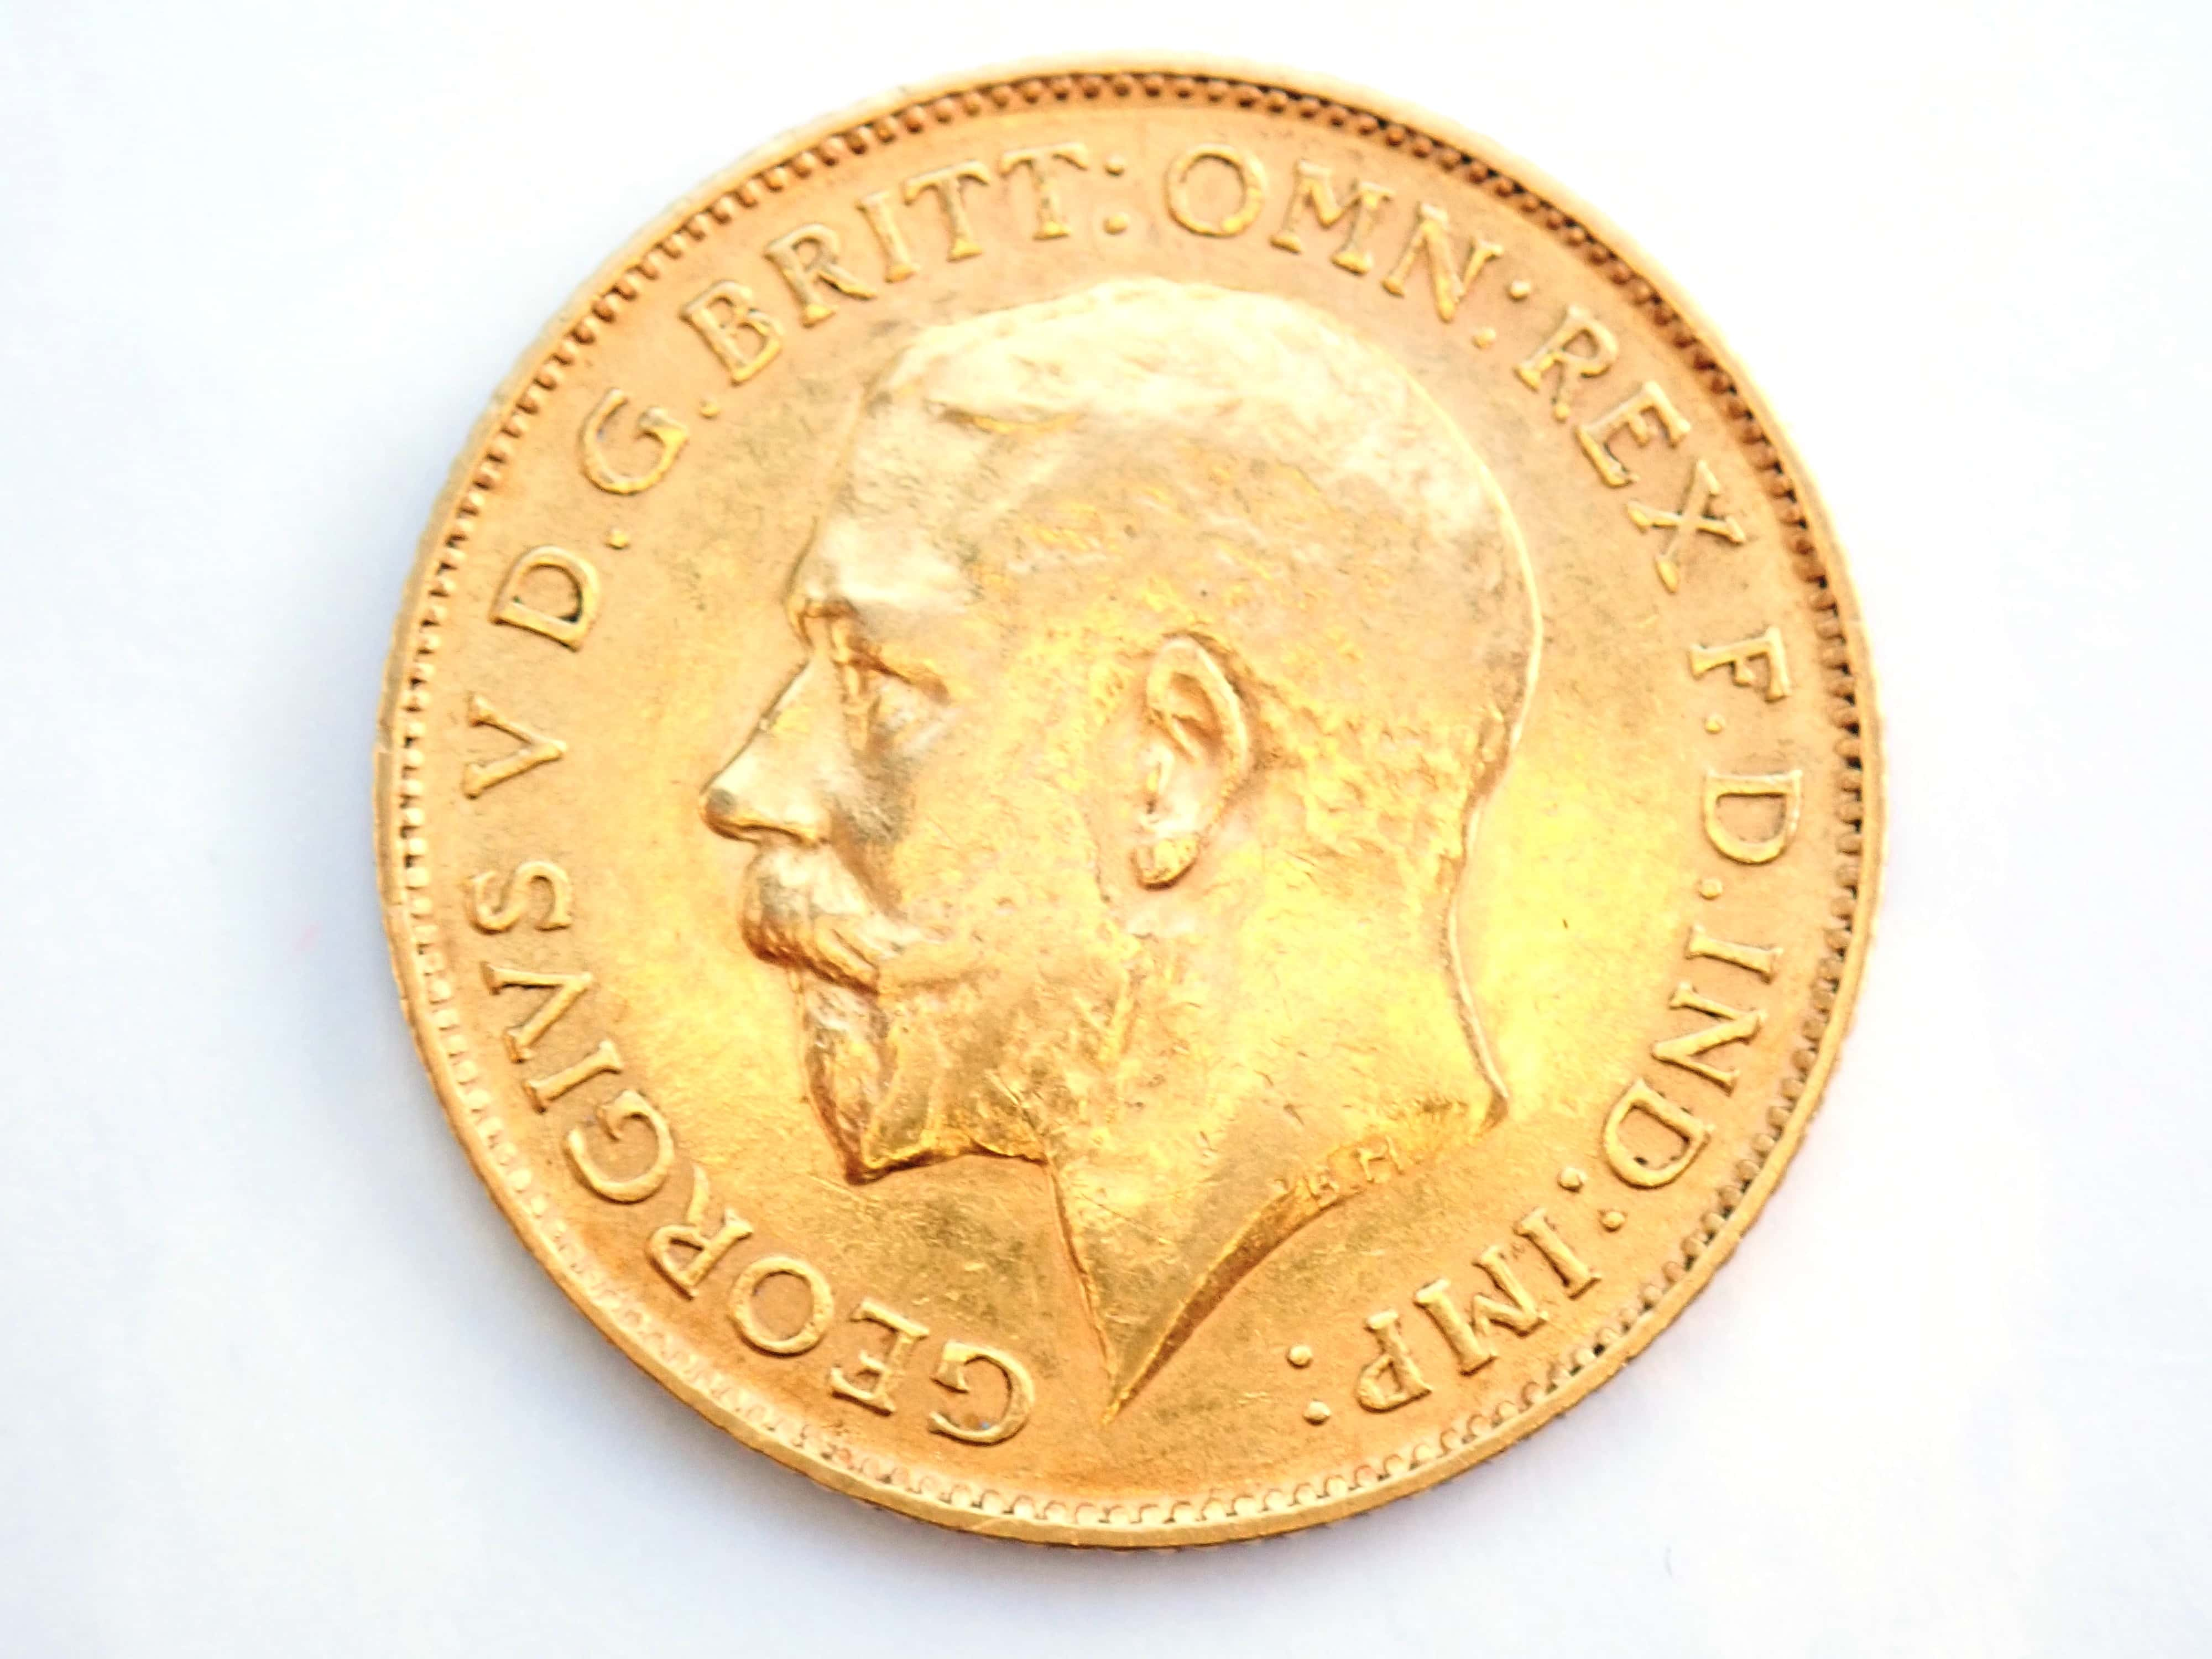 AA000825 - 1913 Gold Half Sovereign Coin - King George V- London Mint #b193